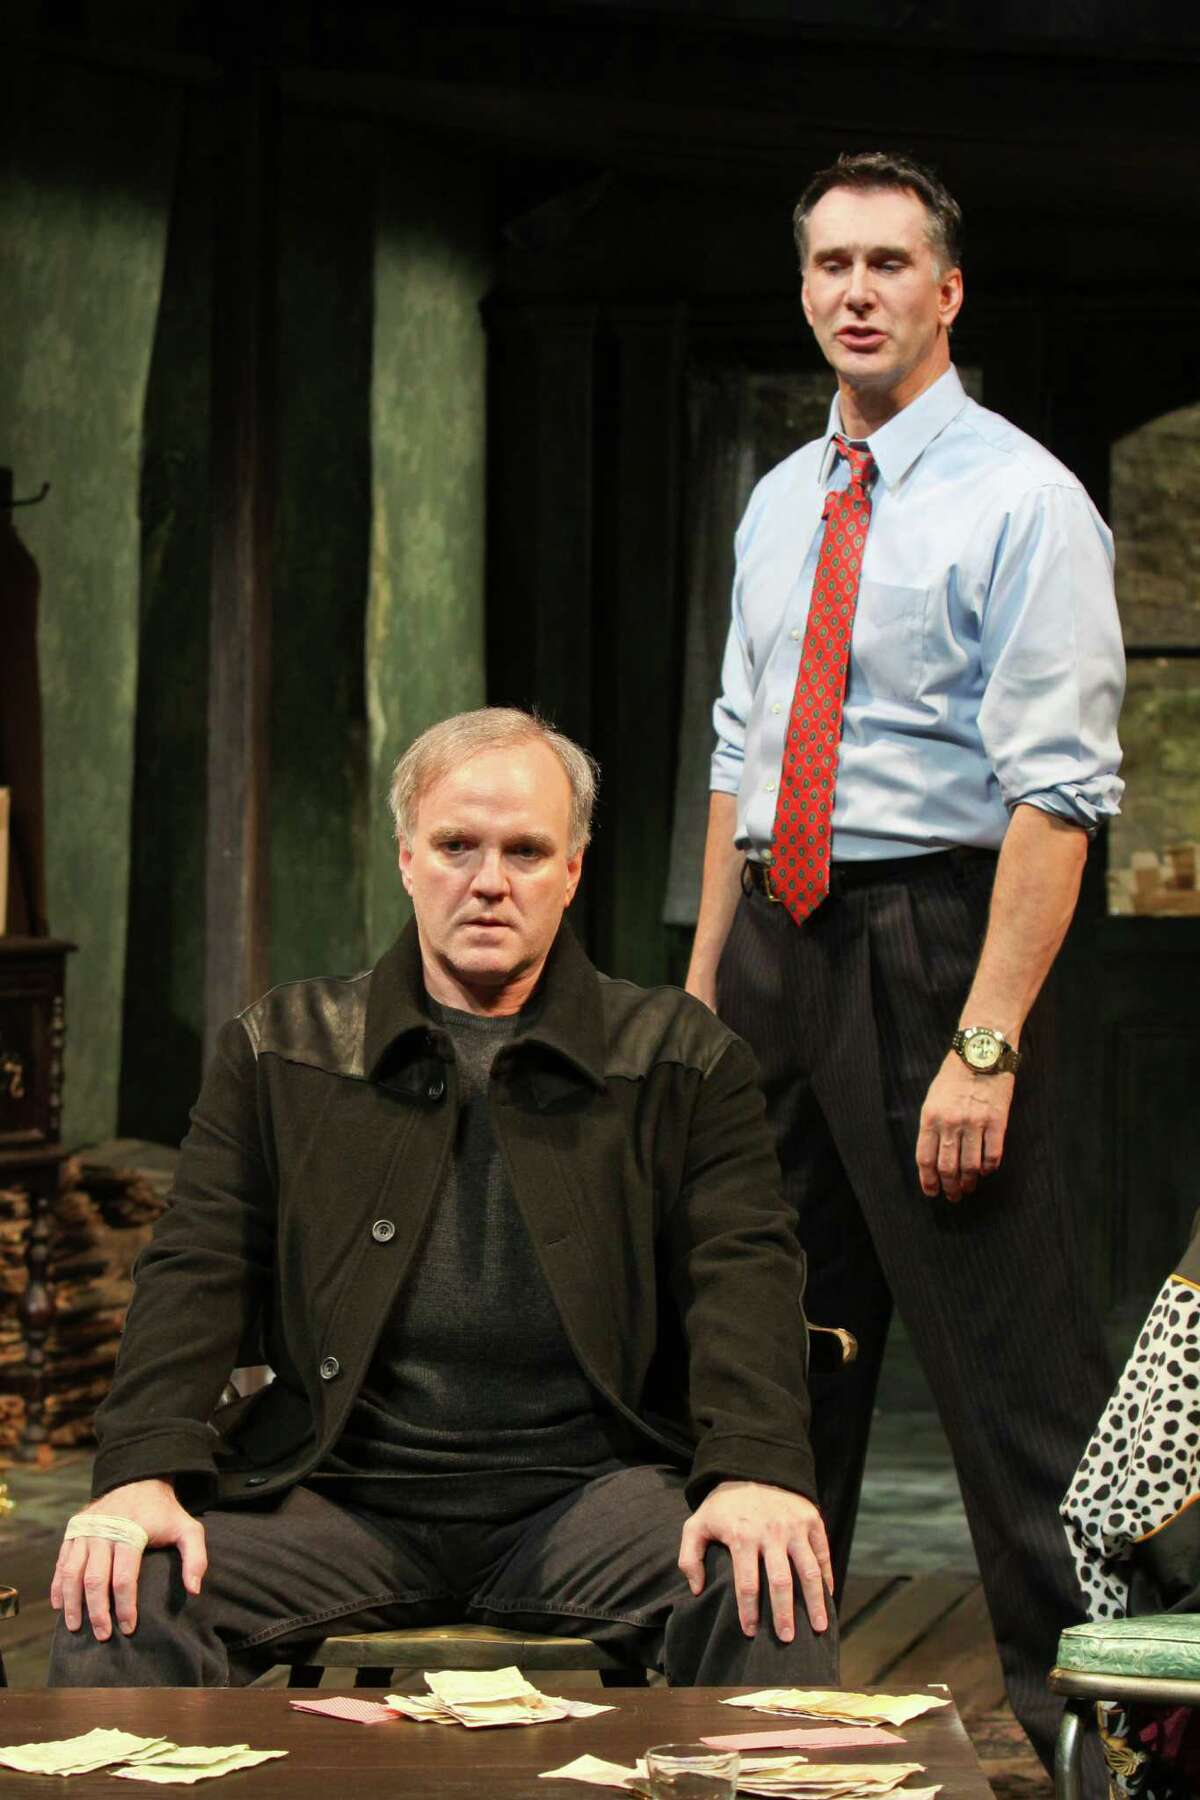 """(For the Chronicle/Gary Fountain, April 3, 2012) James Black as James """"Sharky"""" Harkin, left, and Todd Waite as Mr. Lockhart, in this scene from Alley Theatre's Houston premiere of Irish playwright Conor McPherson's """"The Seafarer."""""""